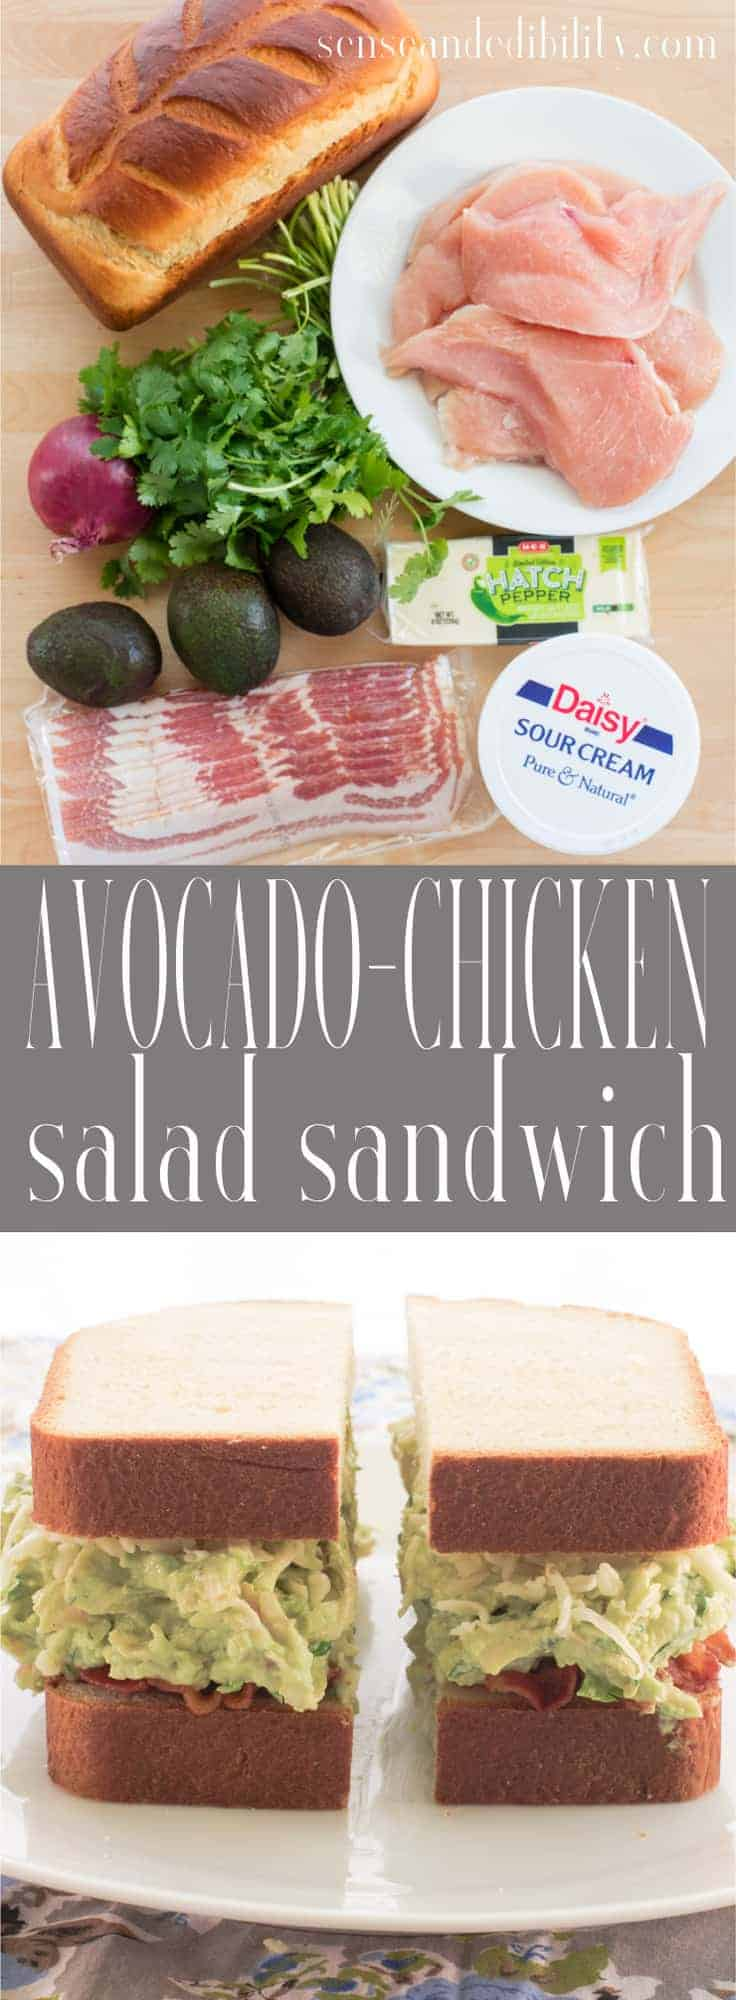 Sense & Edibility's Avocado-Chicken Salad Sandwich Pin